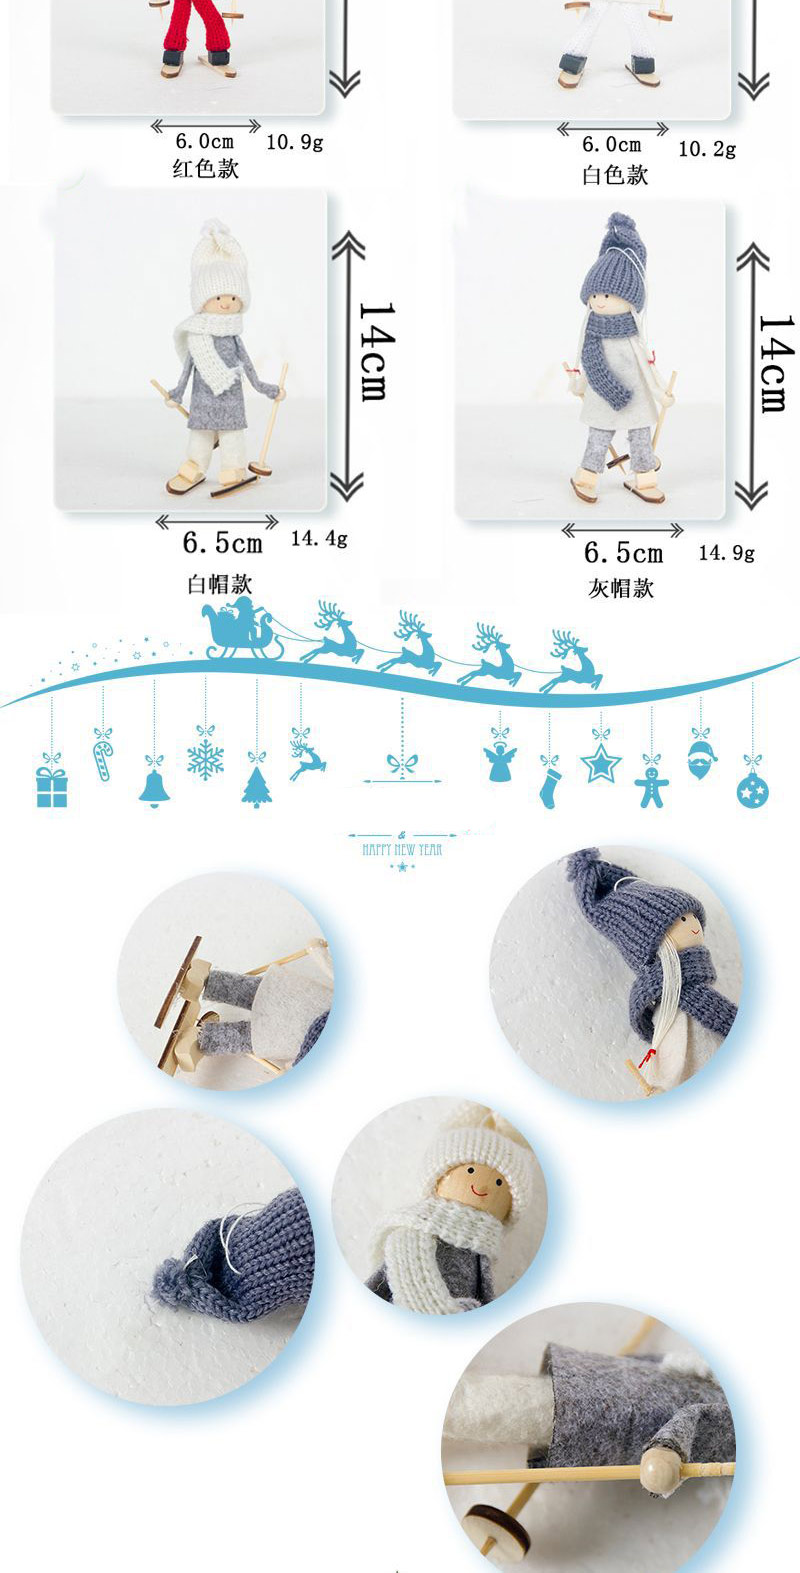 Cute Christmas Tree Decoration Kawaii Christmas Angel Girl Ski Pendant For Home Xmas Cloth Doll Party Hanging Decor Kids Gifts17